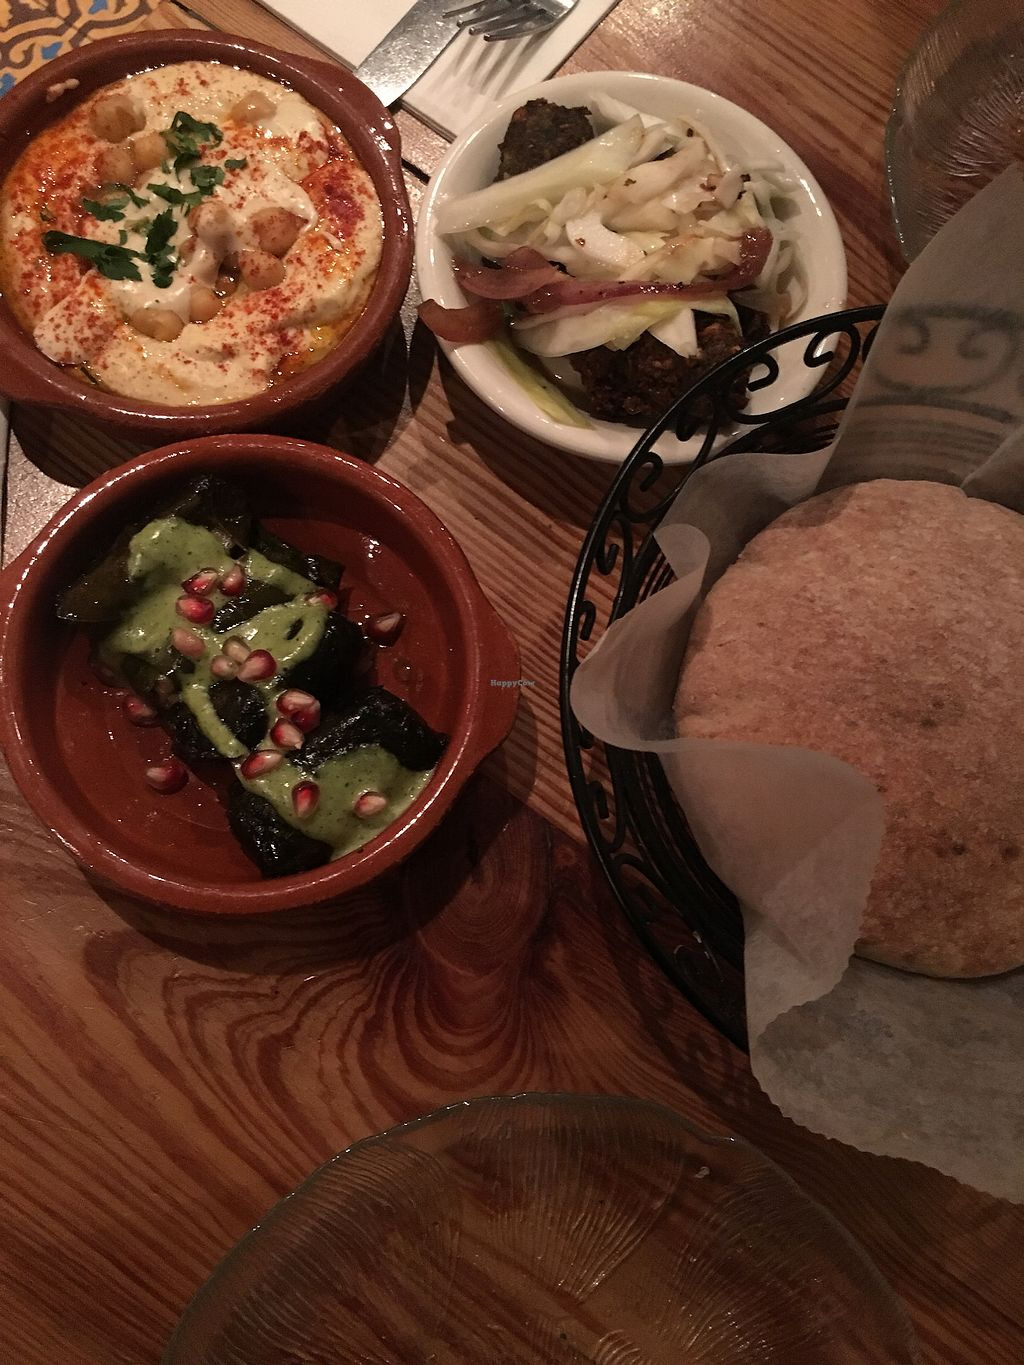 """Photo of Hummus Kitchen  by <a href=""""/members/profile/LauraZr"""">LauraZr</a> <br/>Hummus, falafel & dolmas <br/> November 5, 2017  - <a href='/contact/abuse/image/80555/322293'>Report</a>"""